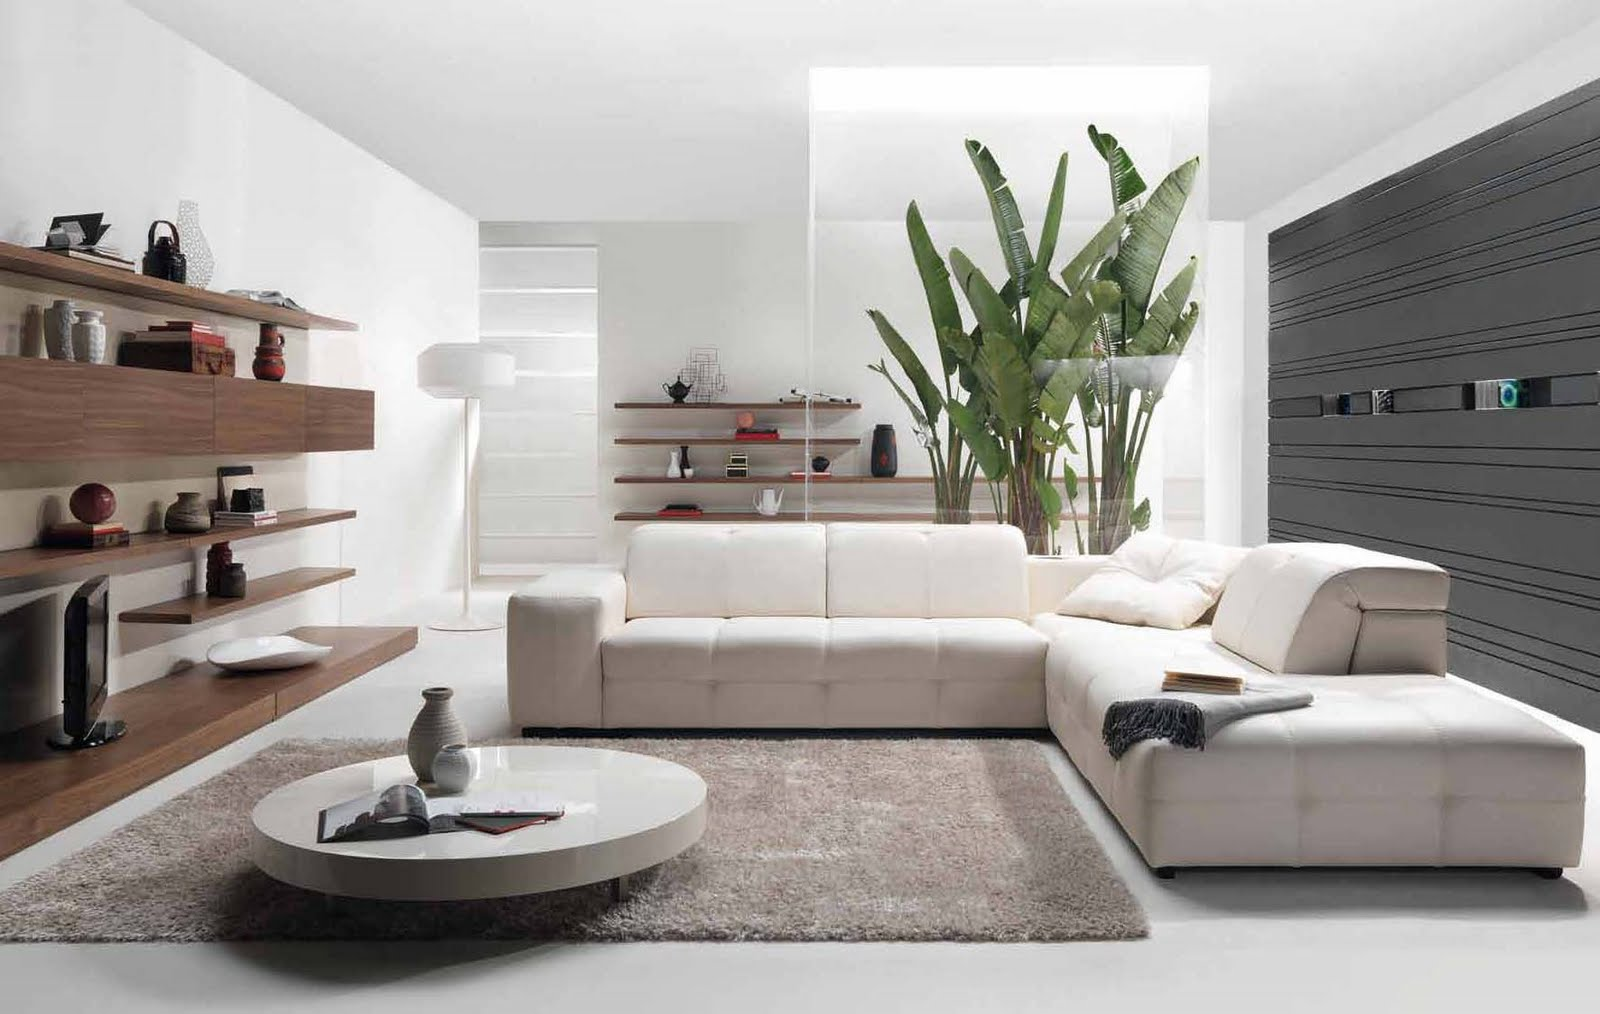 Future house design modern living room interior design for Internal design living room